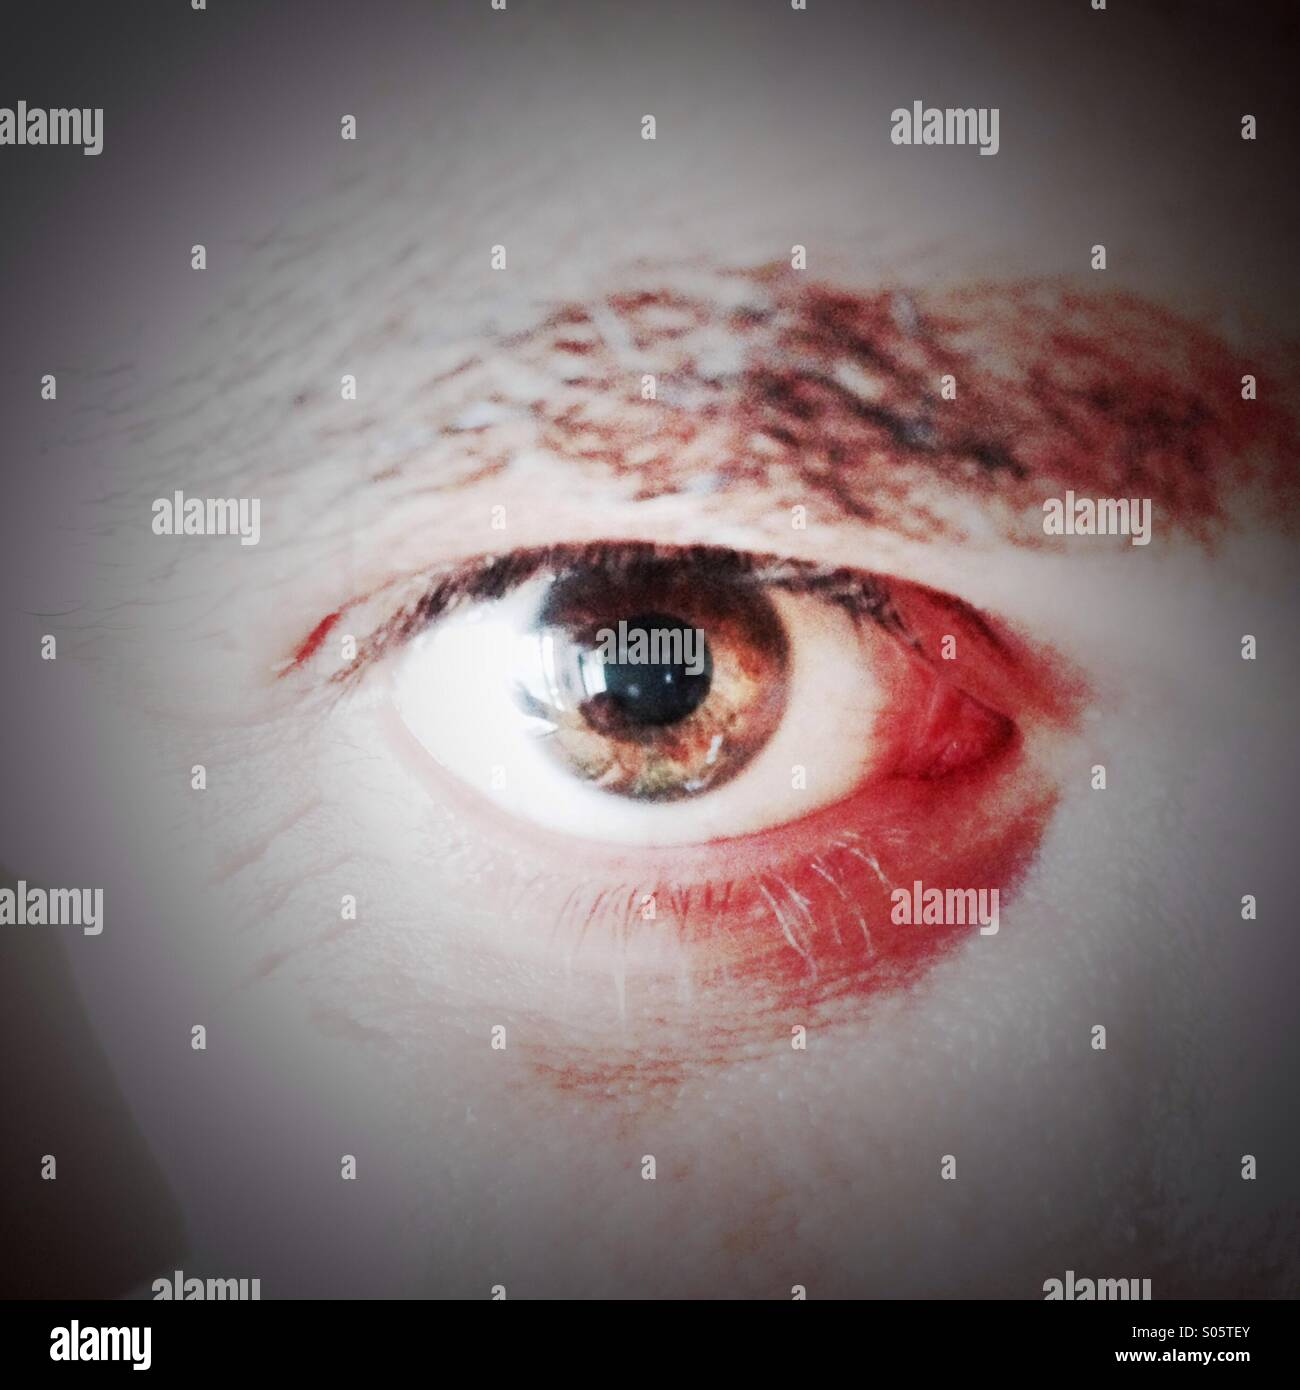 Scary eye - Stock Image